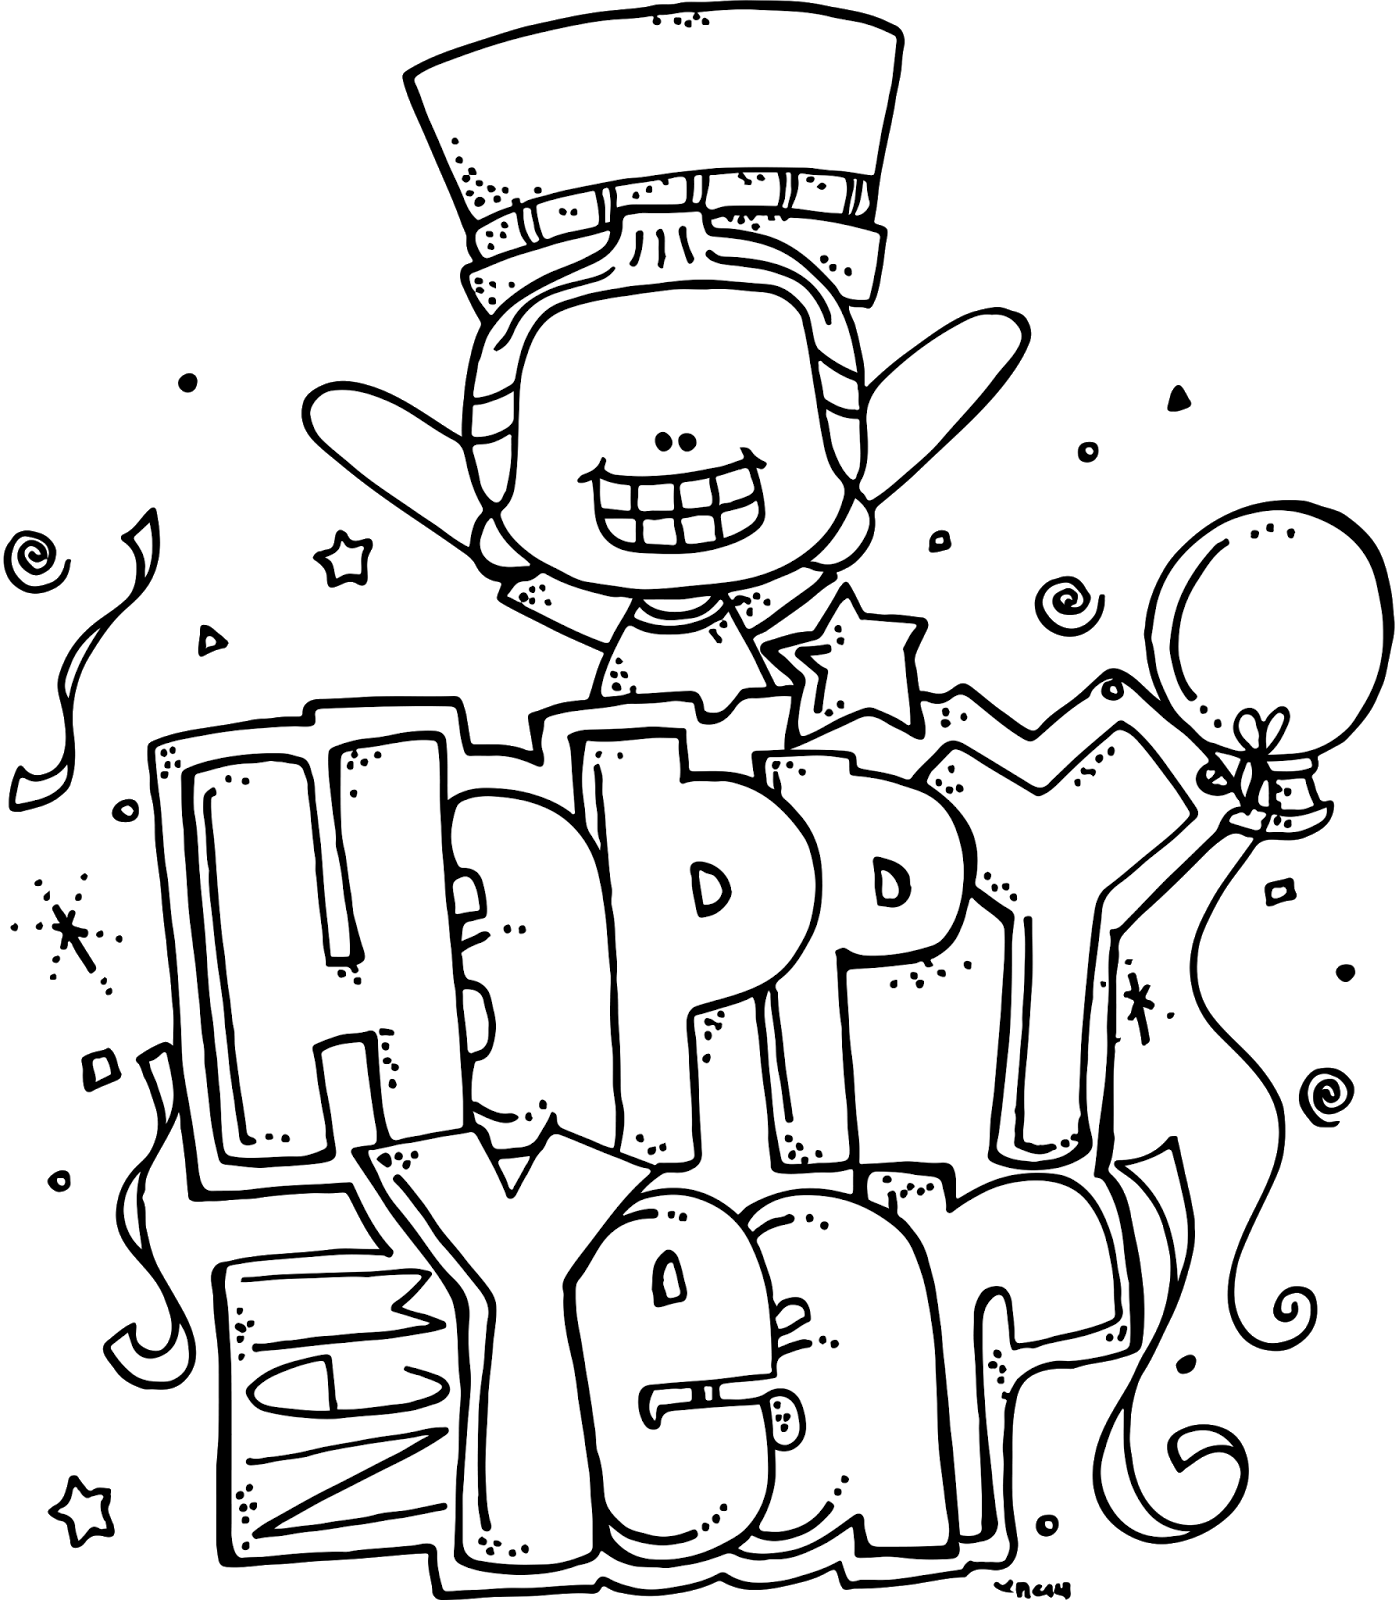 Coloring printable fireworks pages. Elmo clipart happy new year